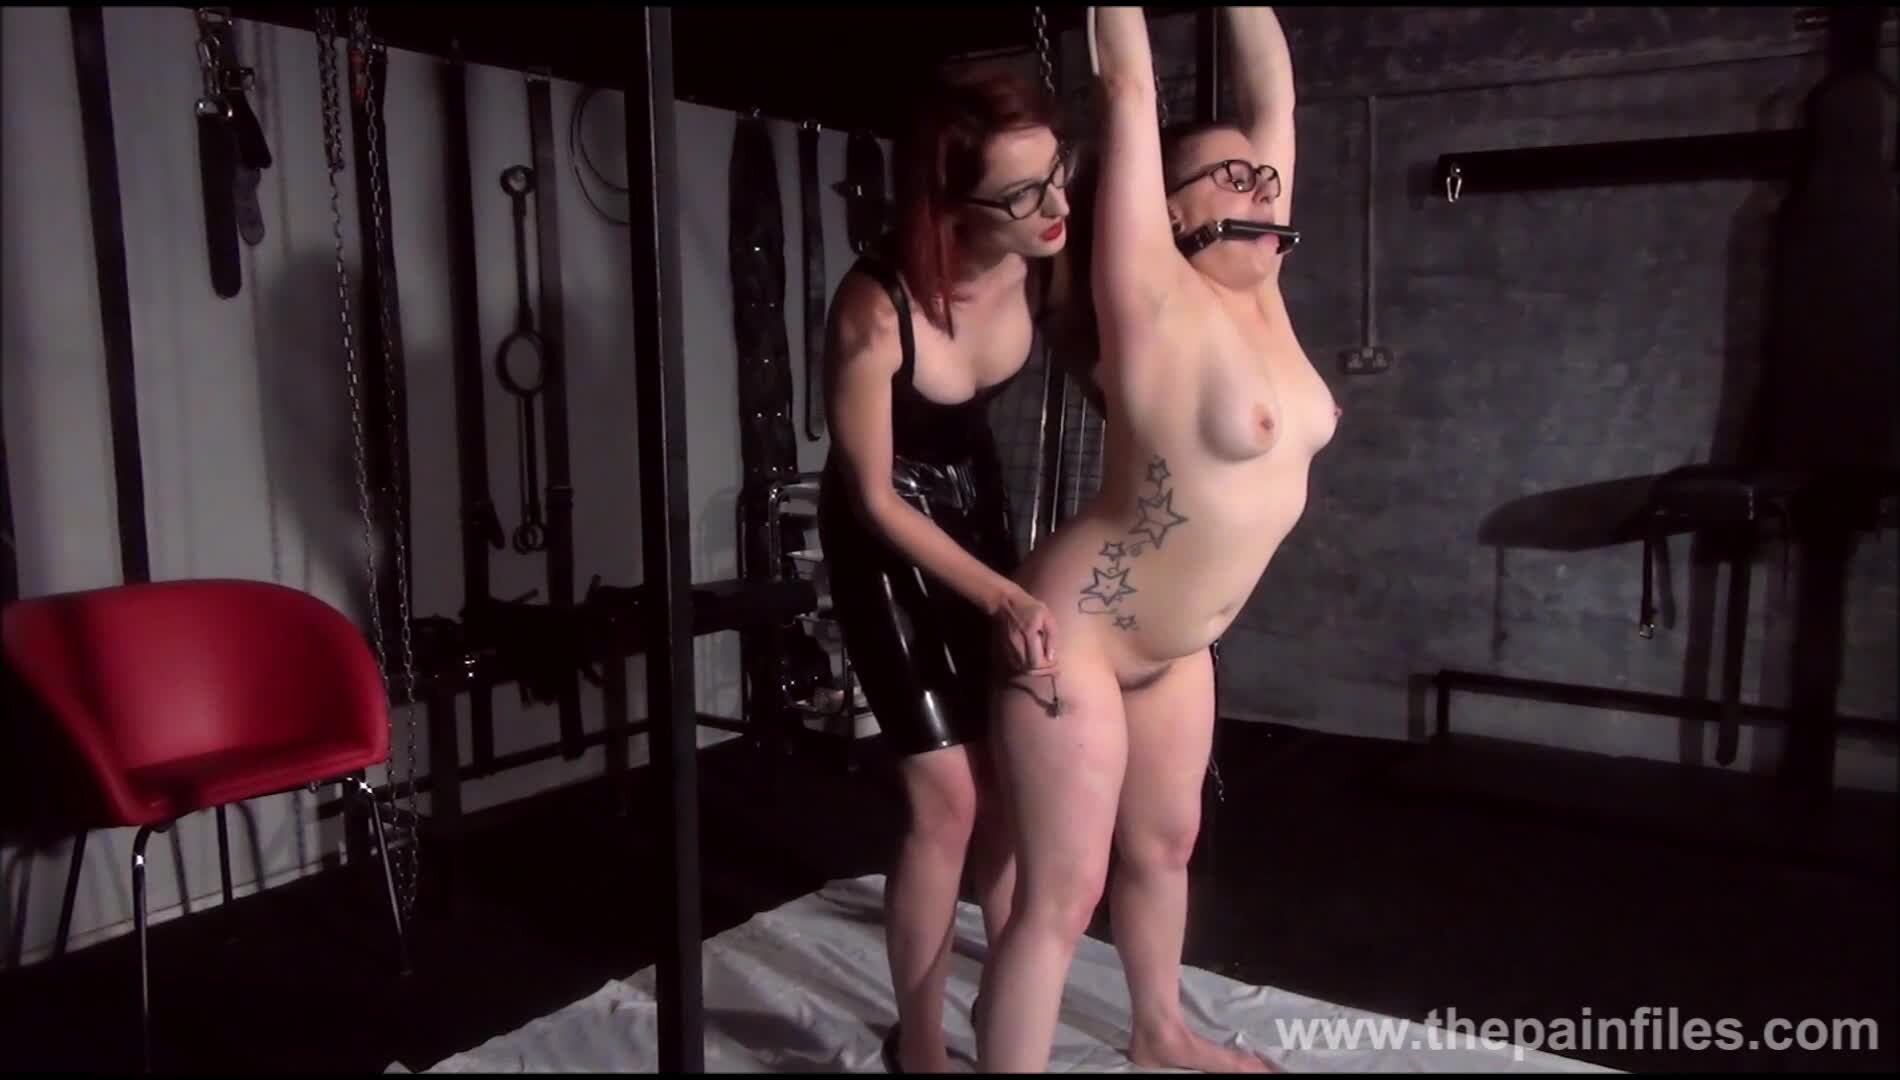 Maddy oreilly pics